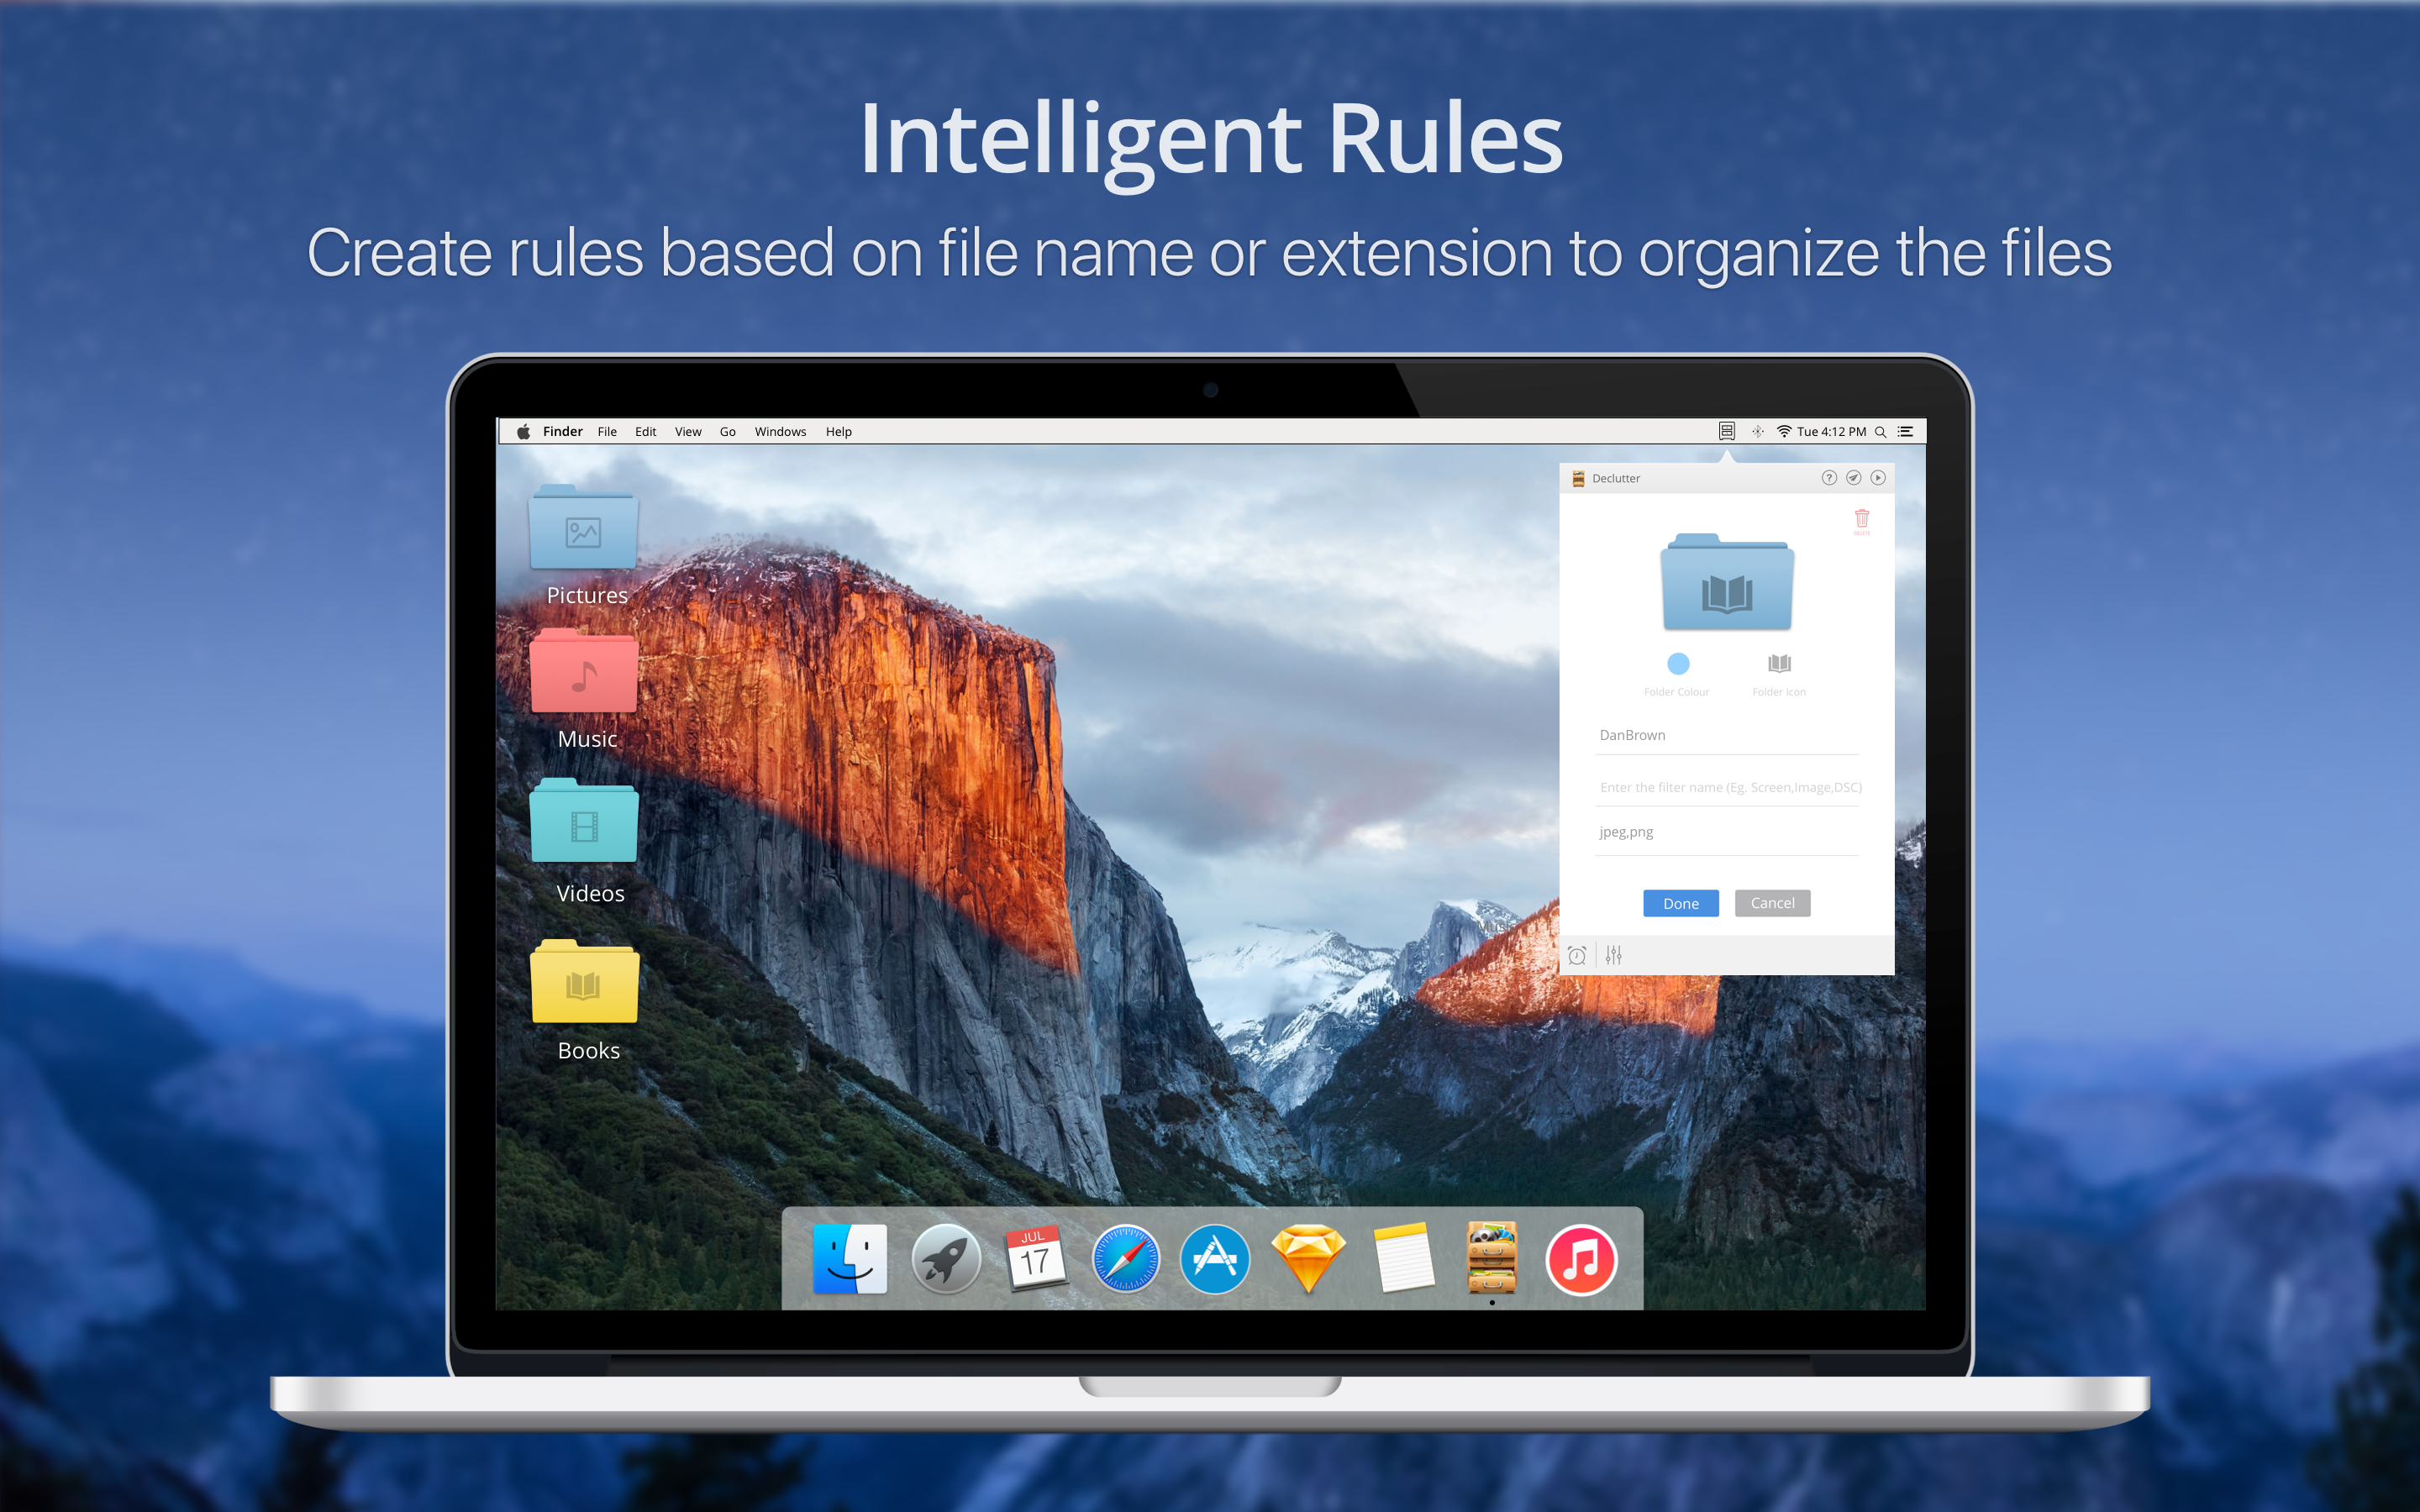 Intelligent rules - Create rules based on file name or extension to organize the files